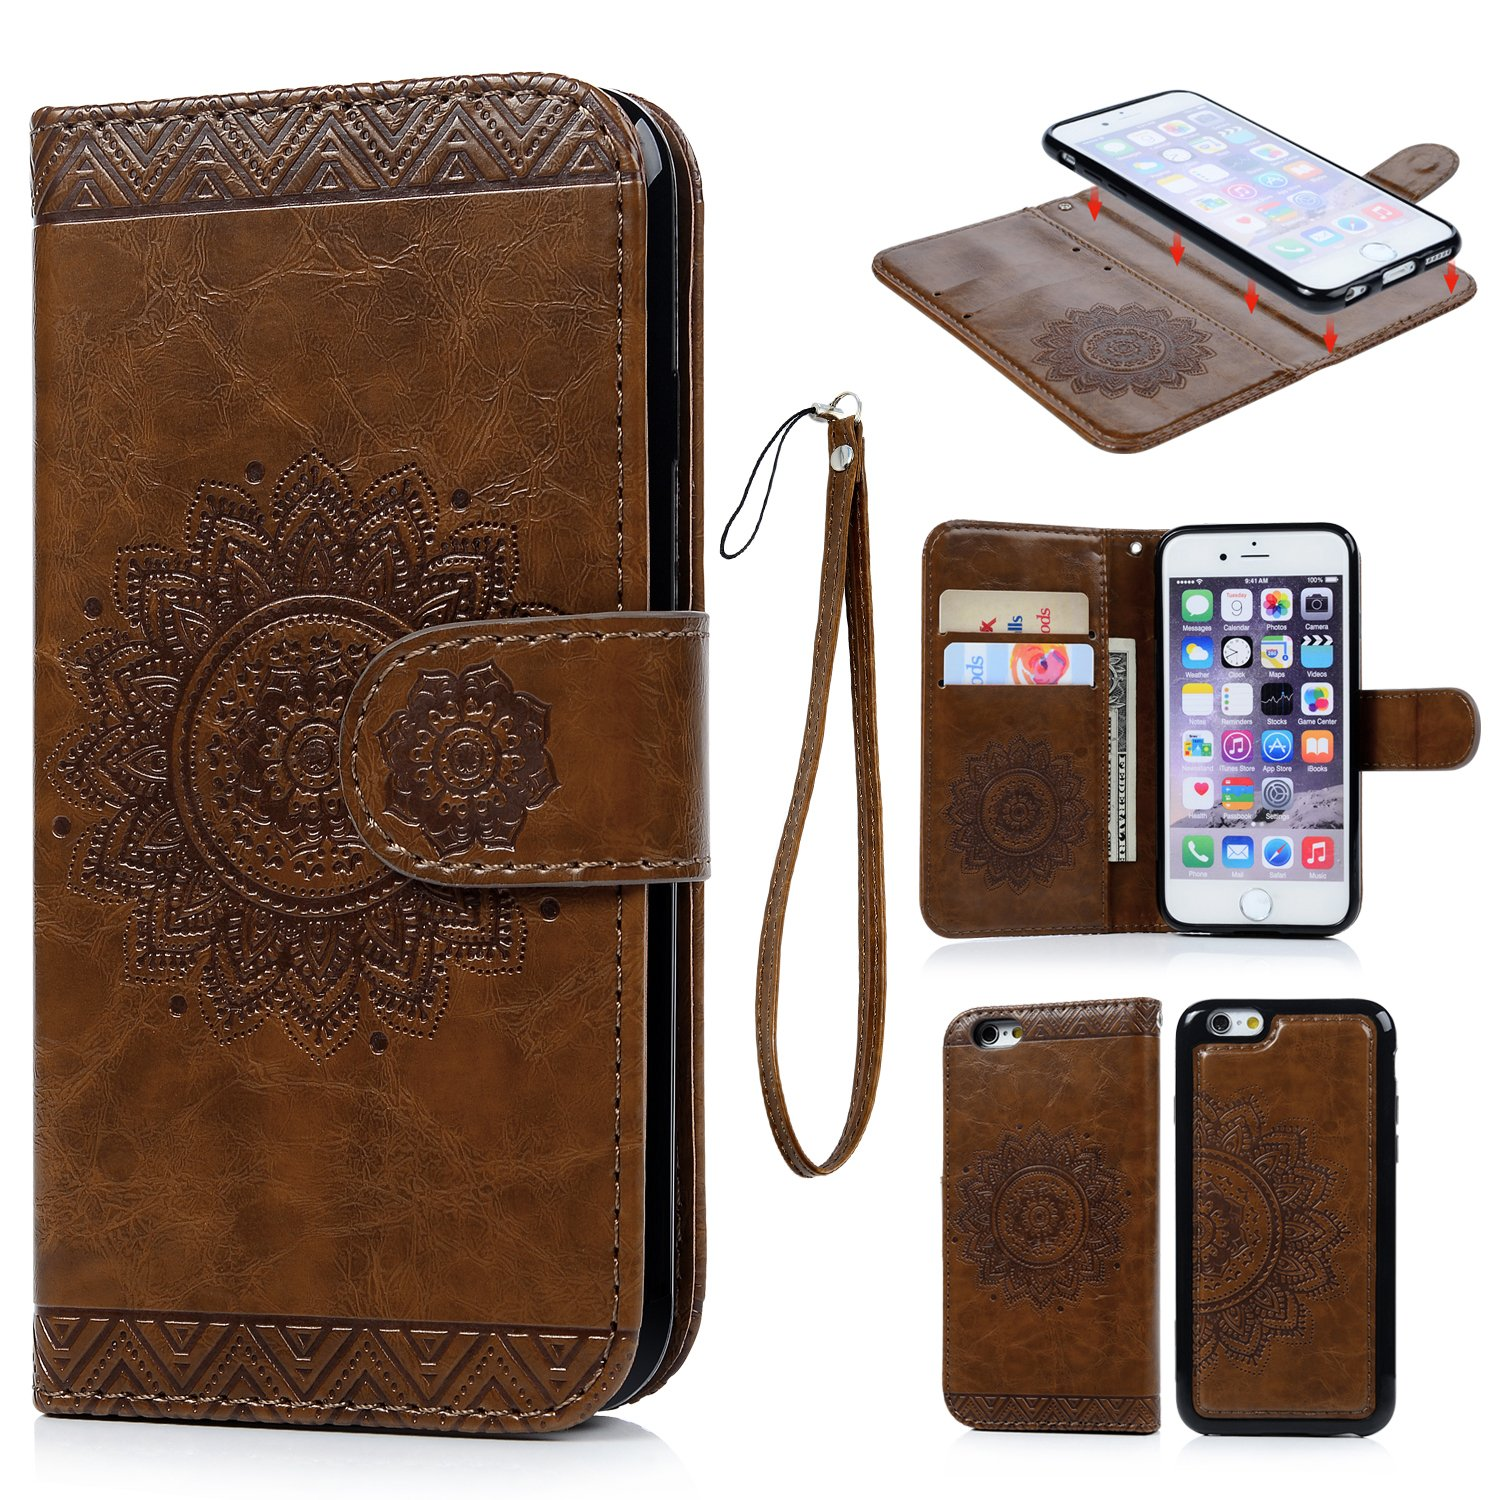 iPhone Funda Libro Suave Leather con Tapa iPhone s Carcasa de Cuero